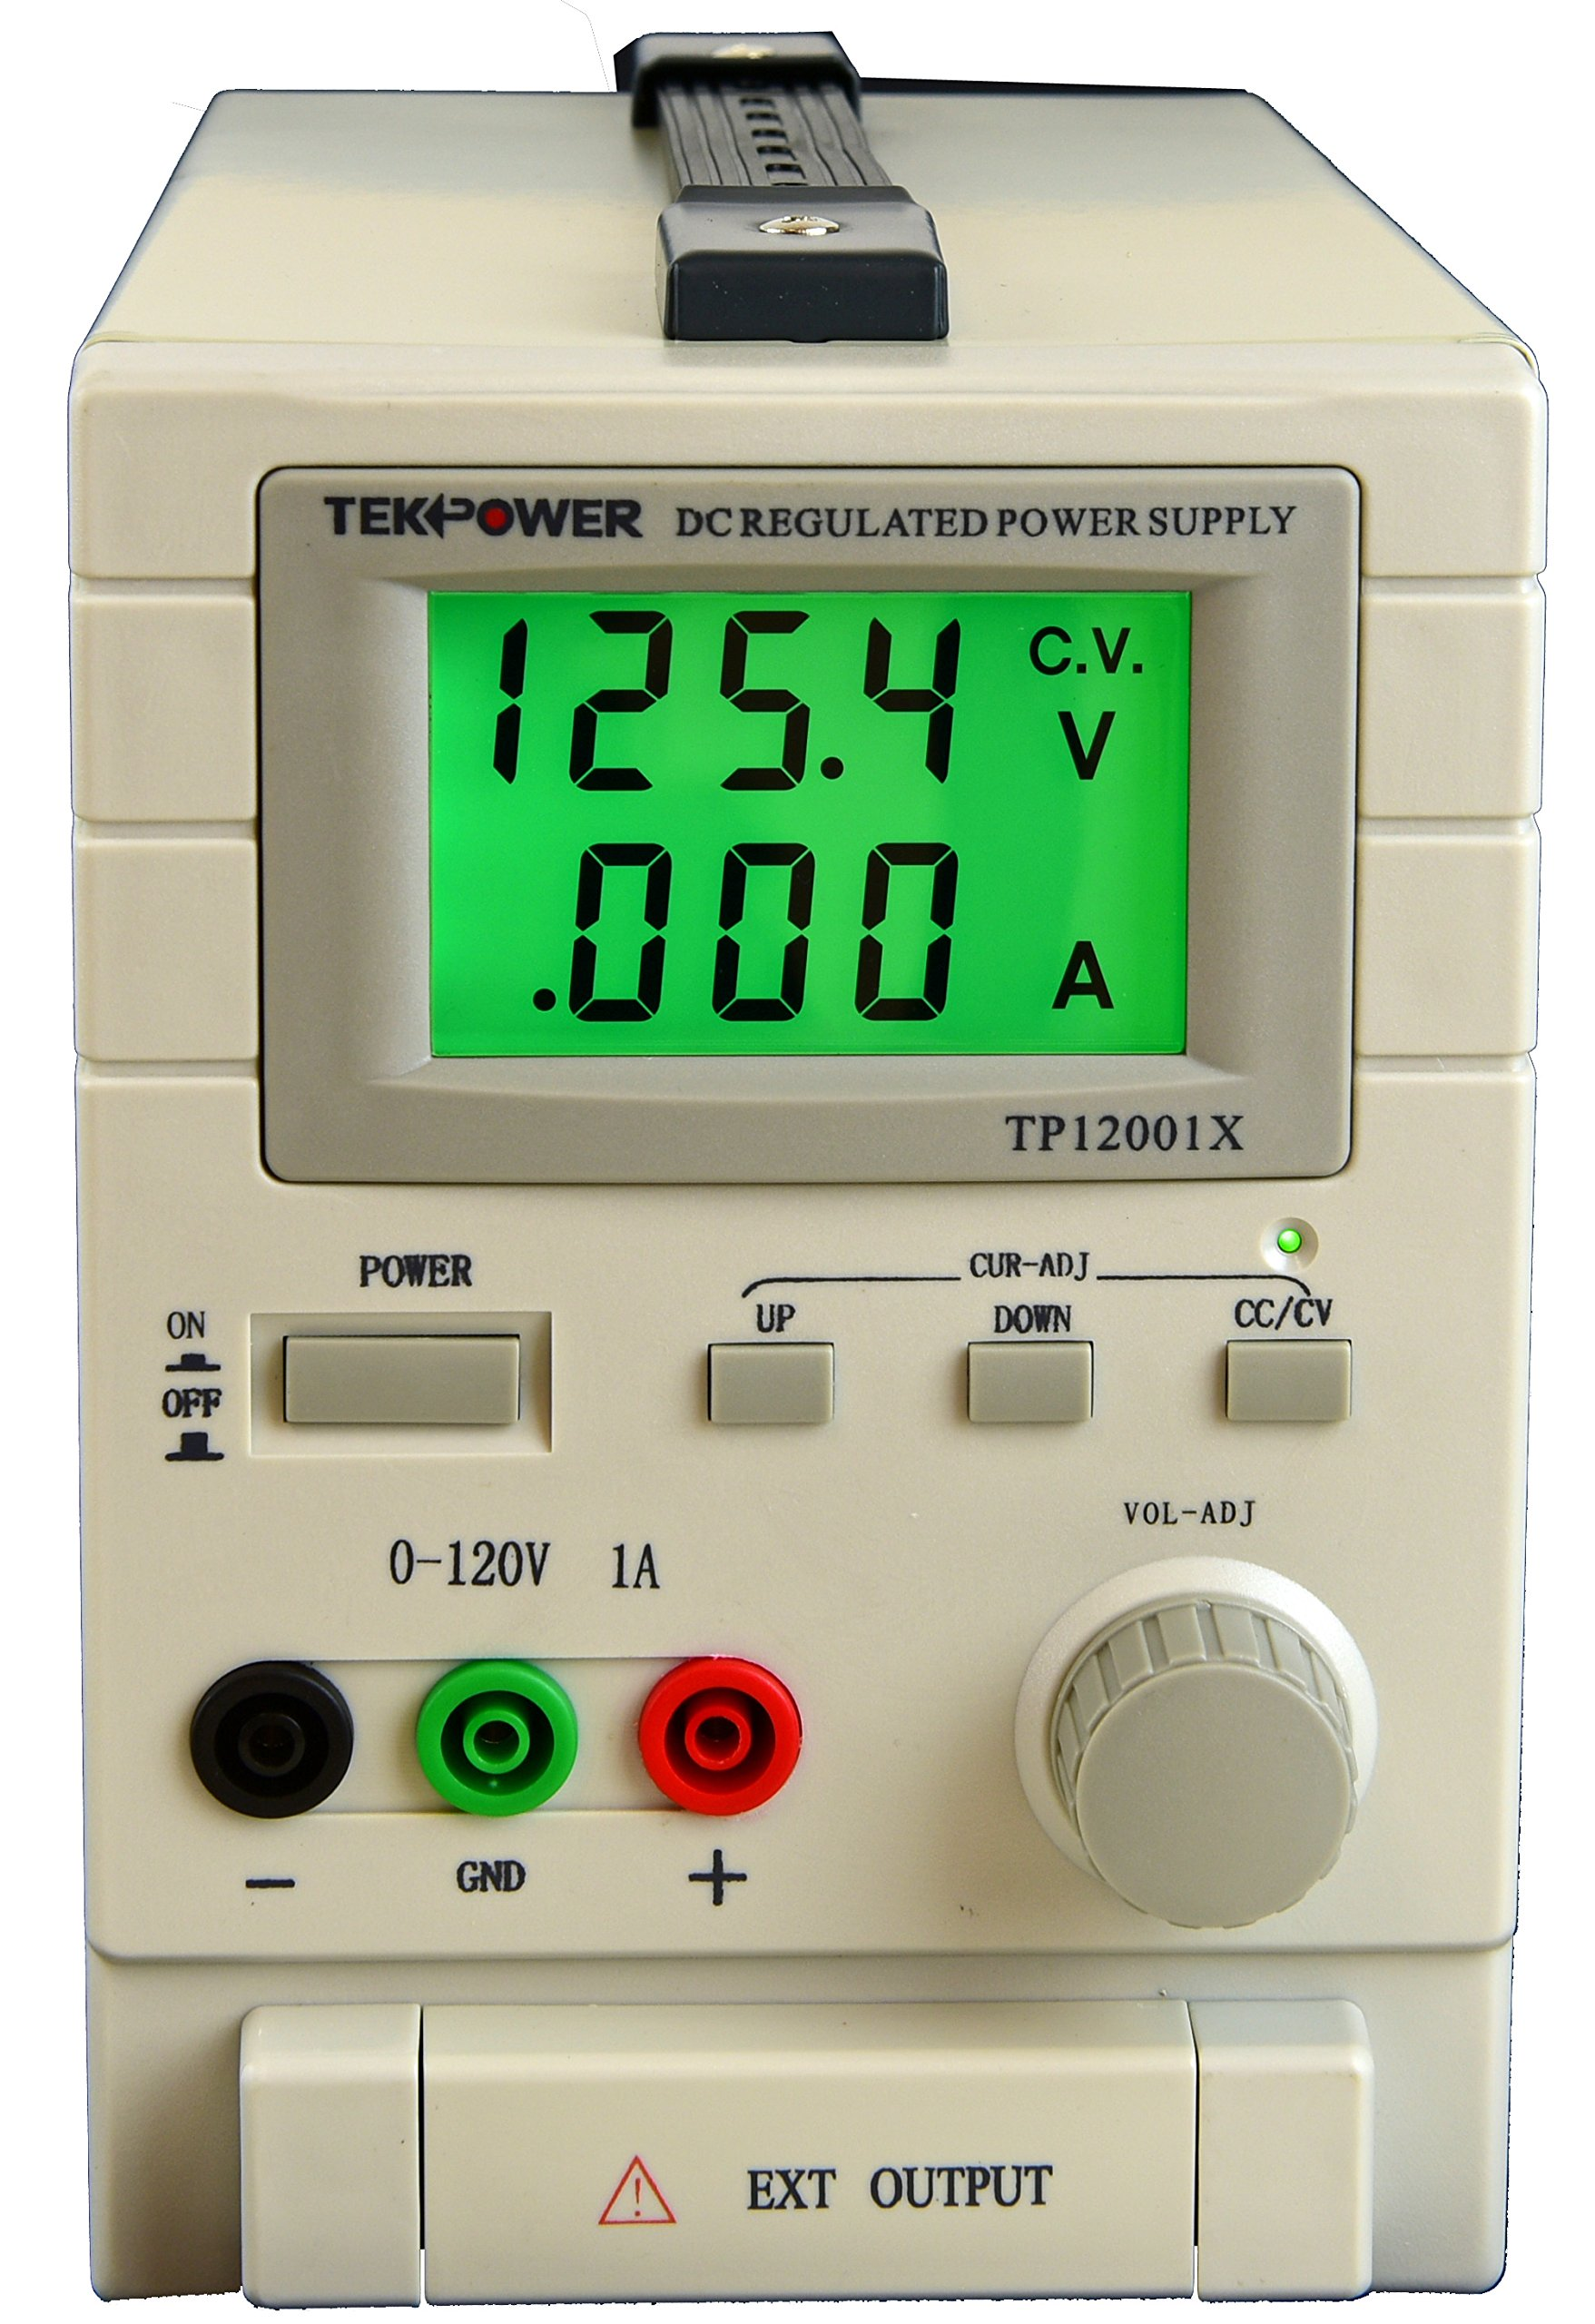 TekPower TP12001X 120V DC Variable Switching Power Supply Output 0-120V @1A, Digital Display with Back Light by Tekpower